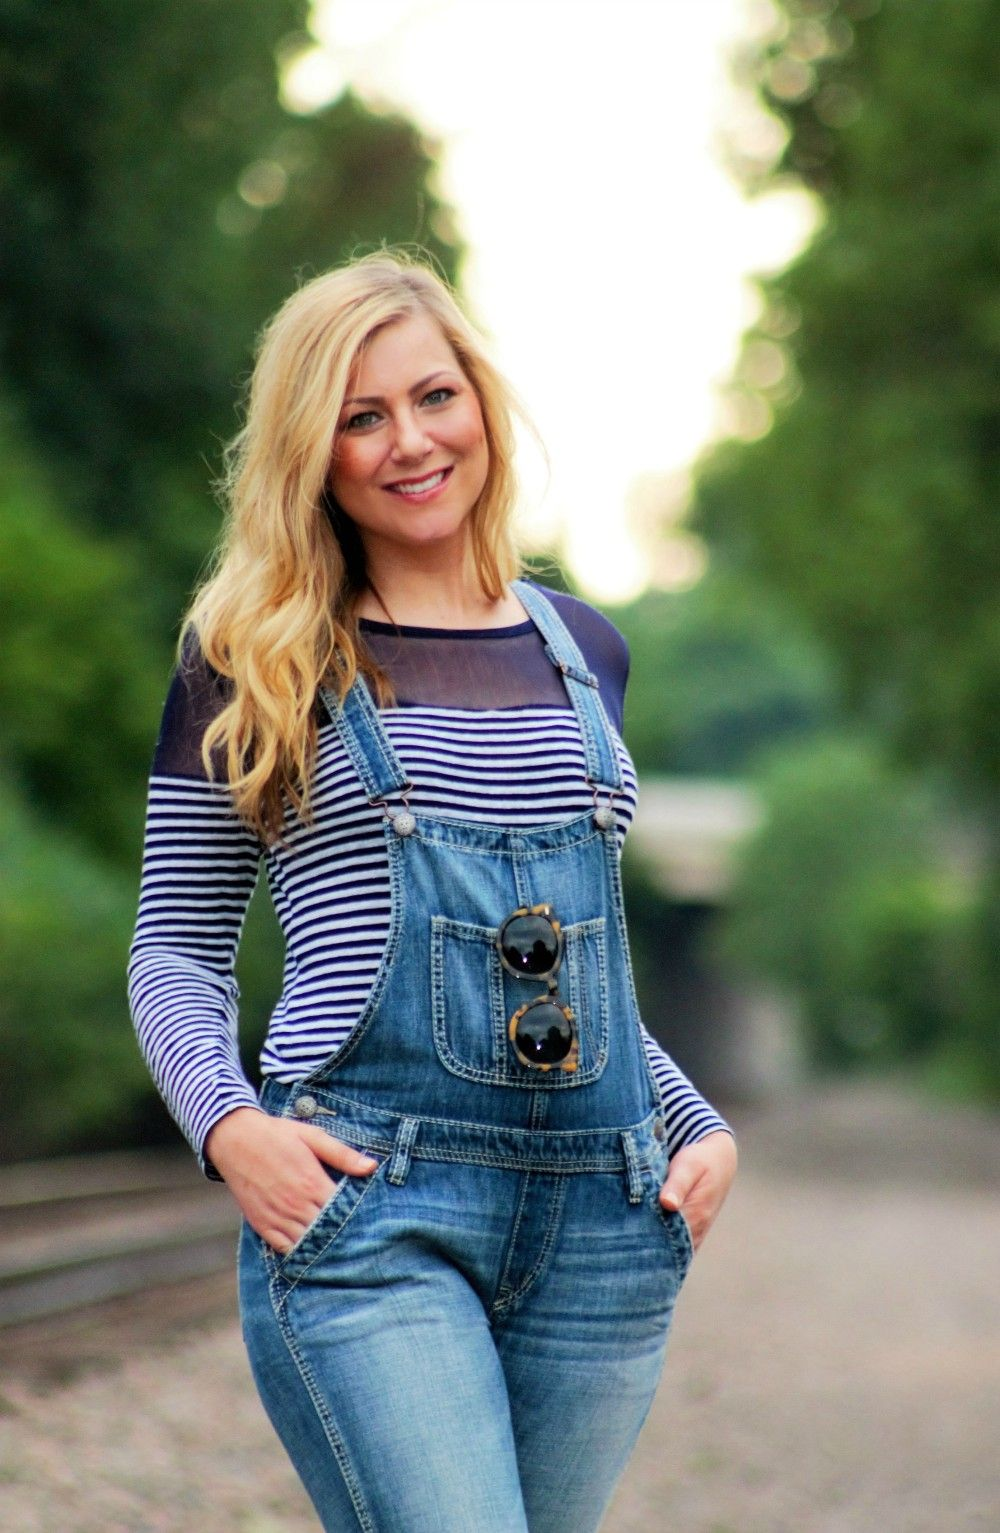 Silver Jeans Co. Overalls | My Style - Rachel's Lookbook ...